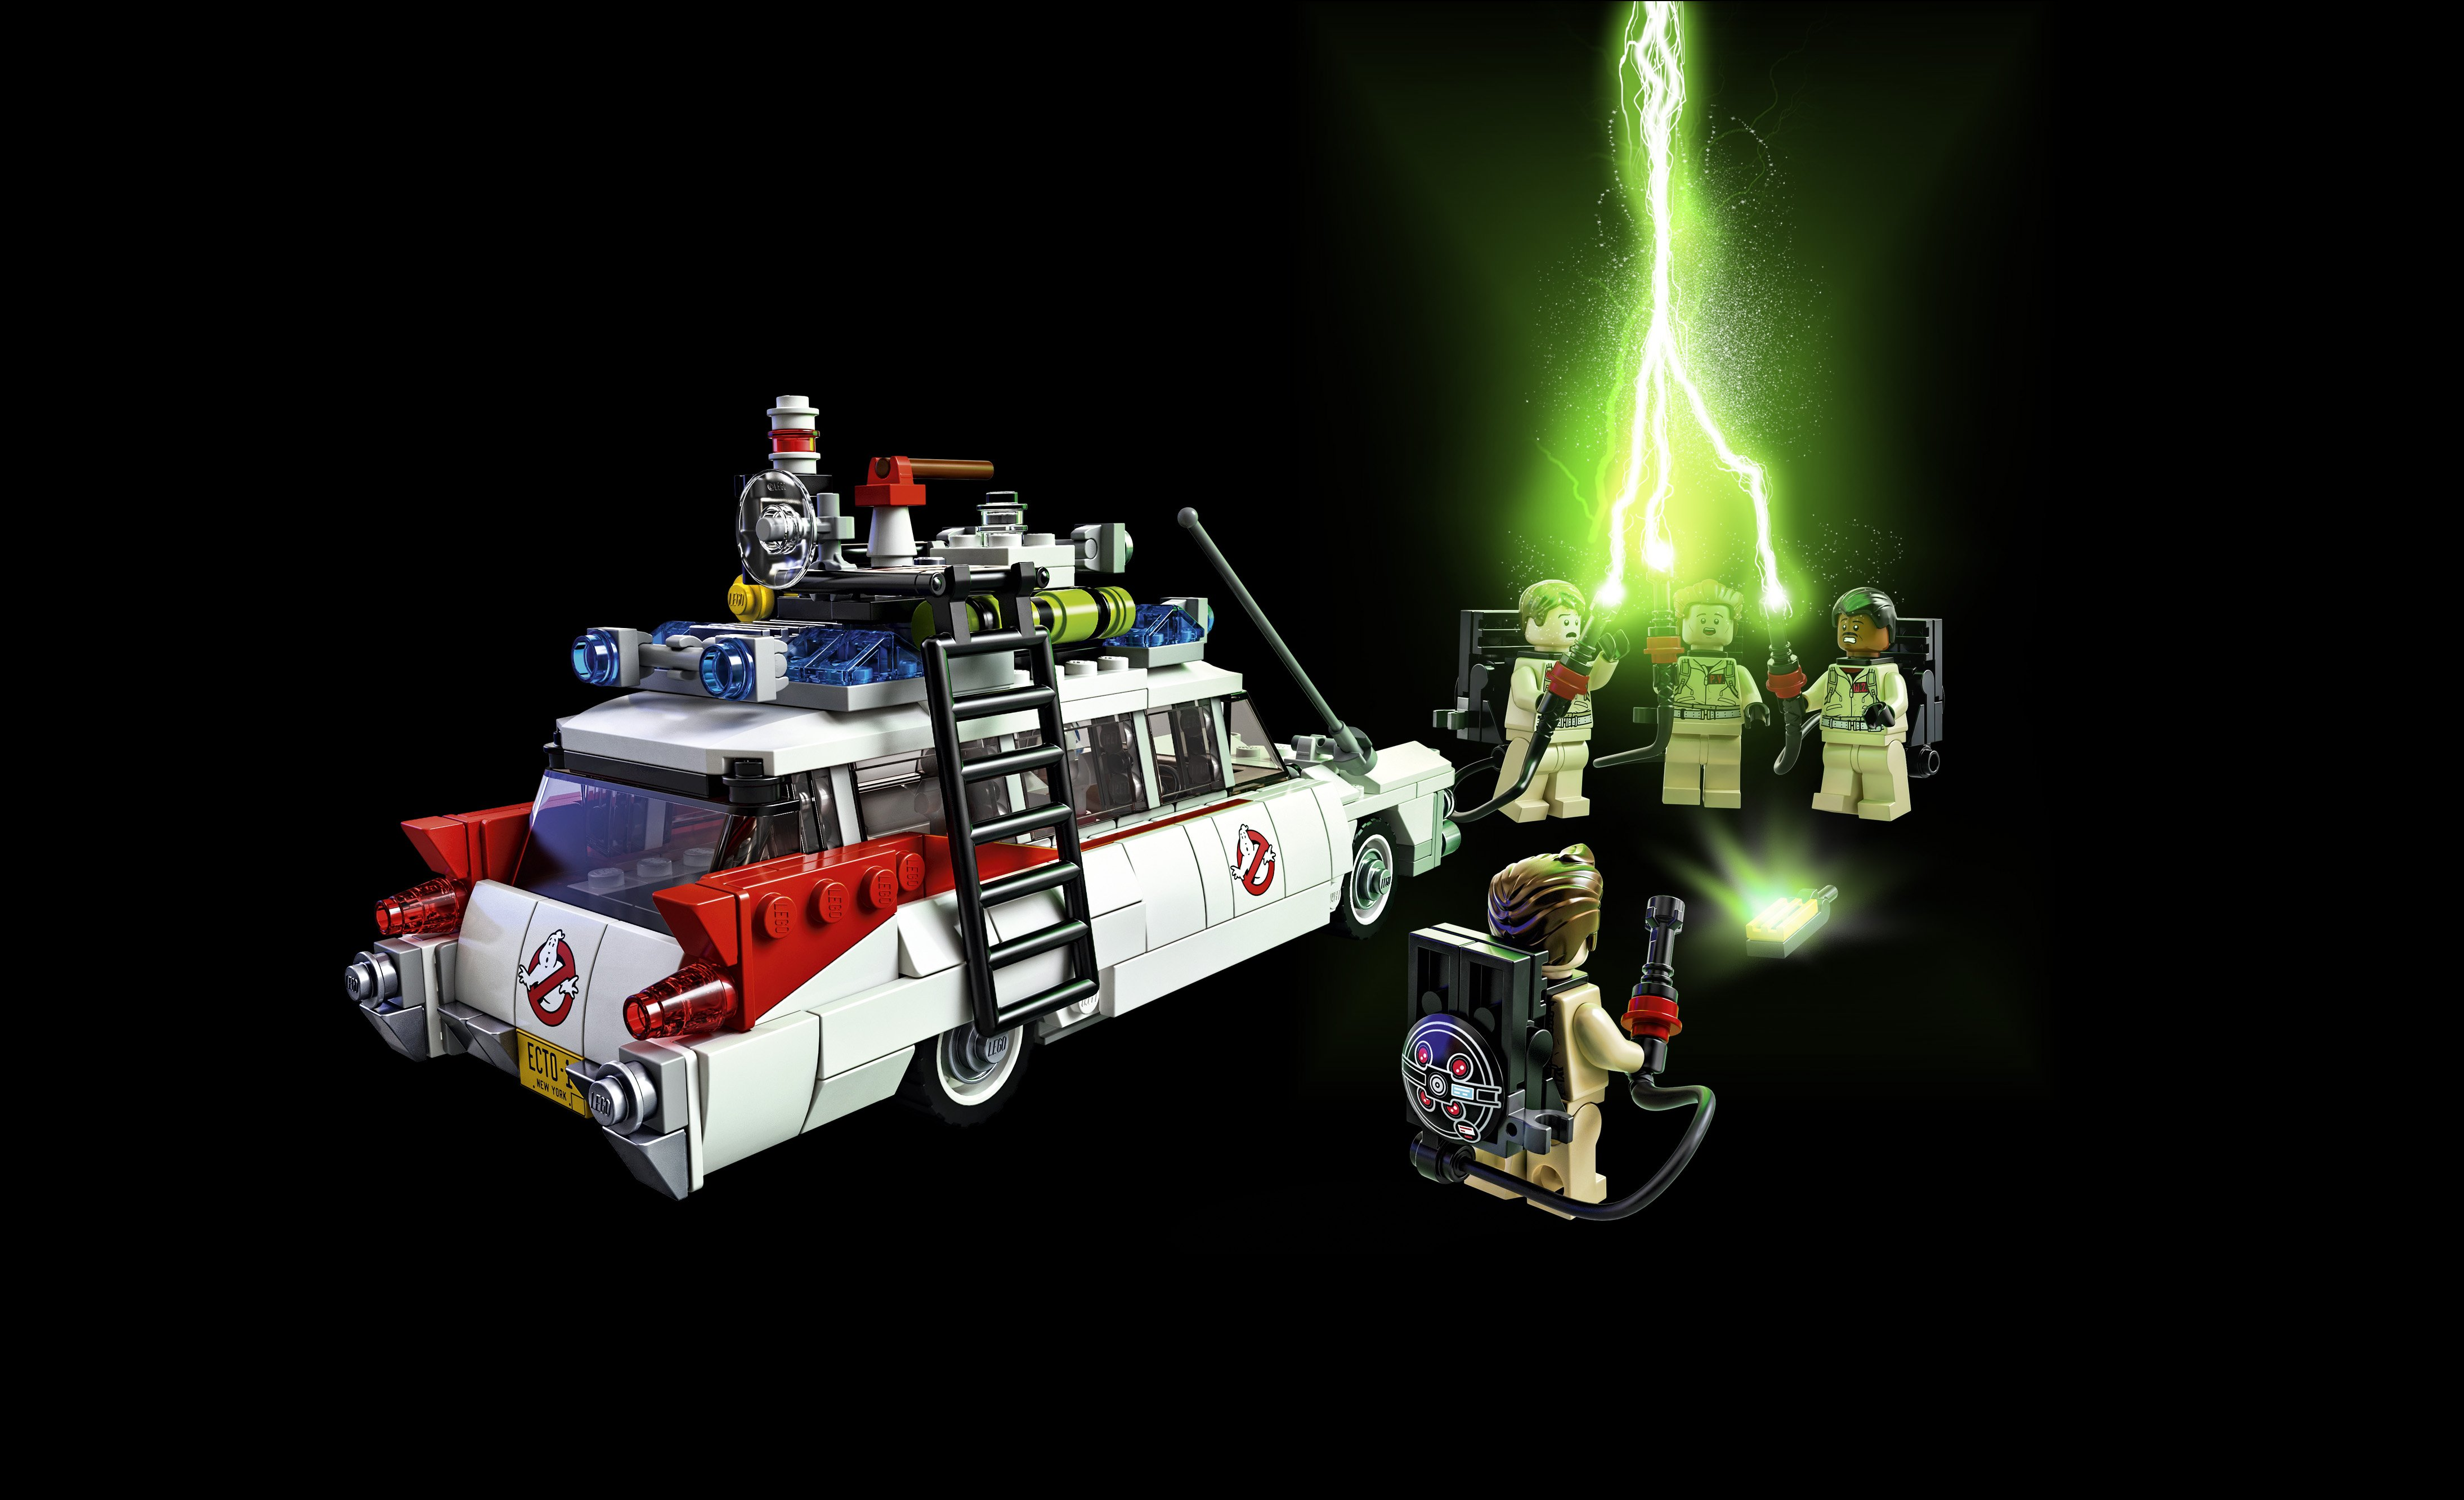 Download free Apple iPhone ghostbusters wallpapers most